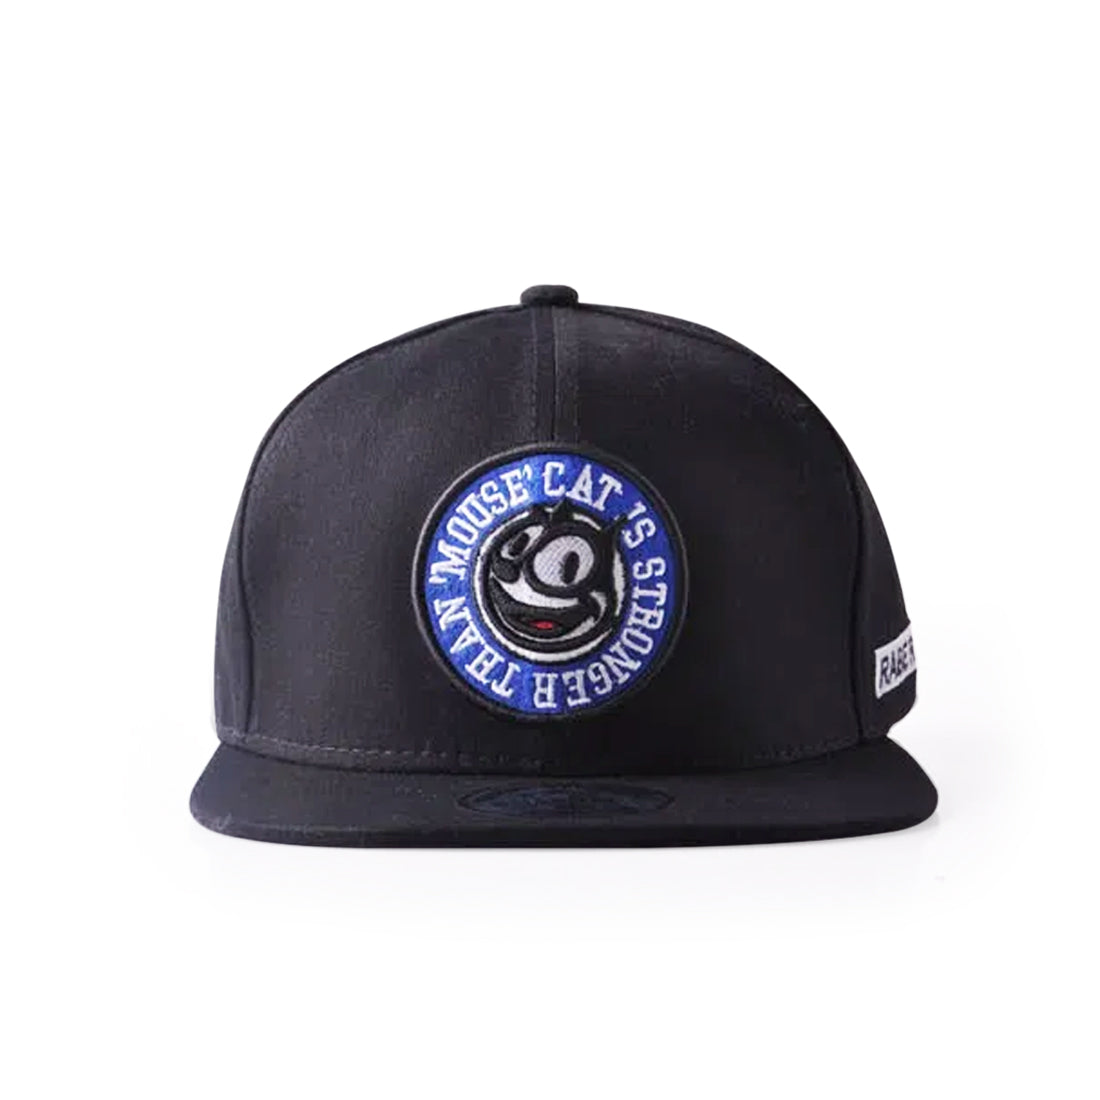 new arrival Mouse Cat Hats Round Baseball Hip Hop Cap